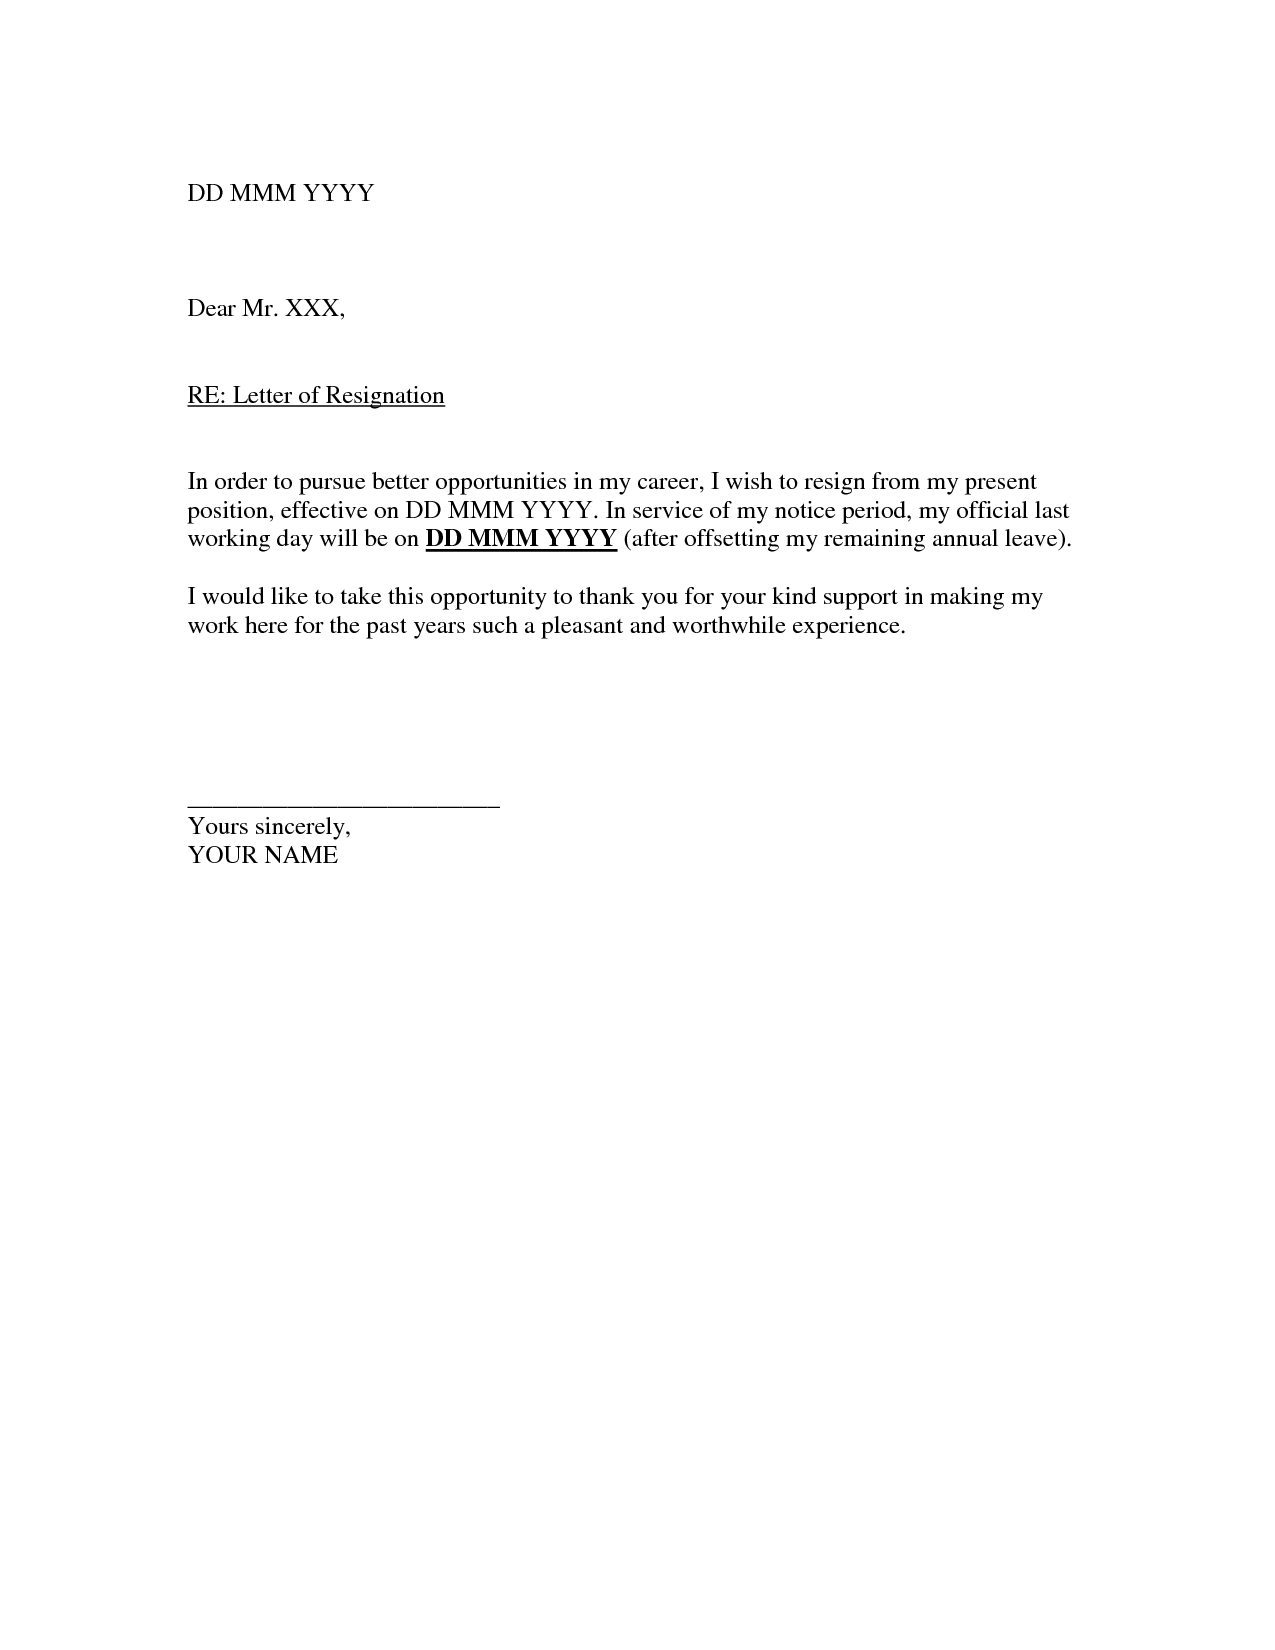 Related to resignation letter template letters of resignation related to resignation letter template letters of resignation templates formal resignation letter sample resignation letter expocarfo